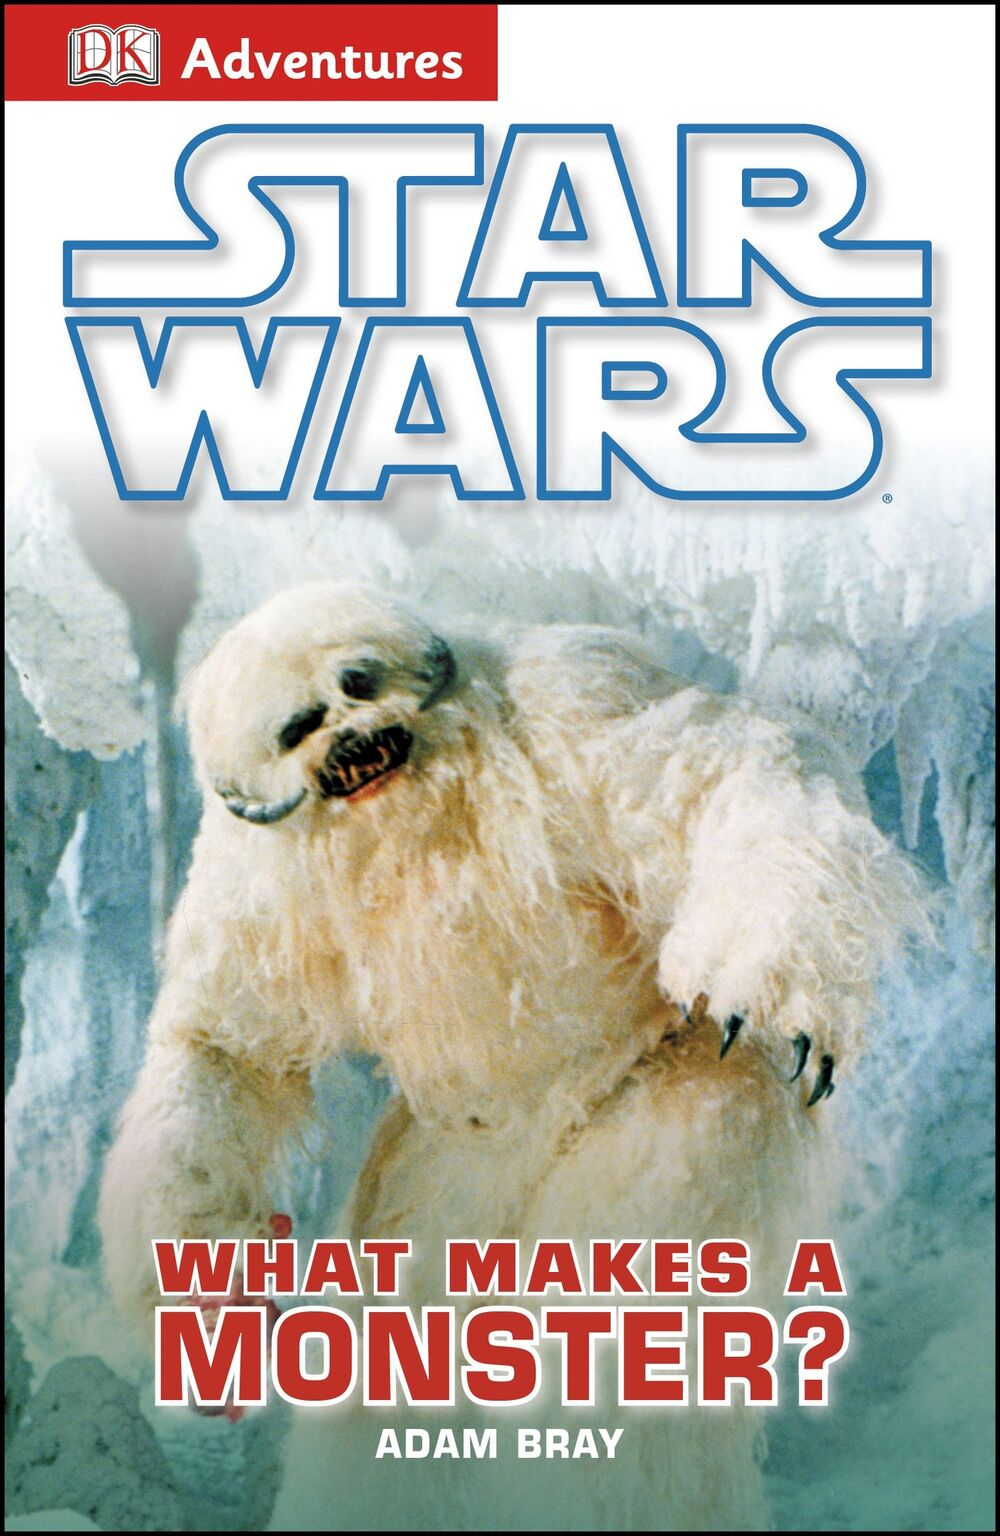 Star Wars: What Makes a Monster?